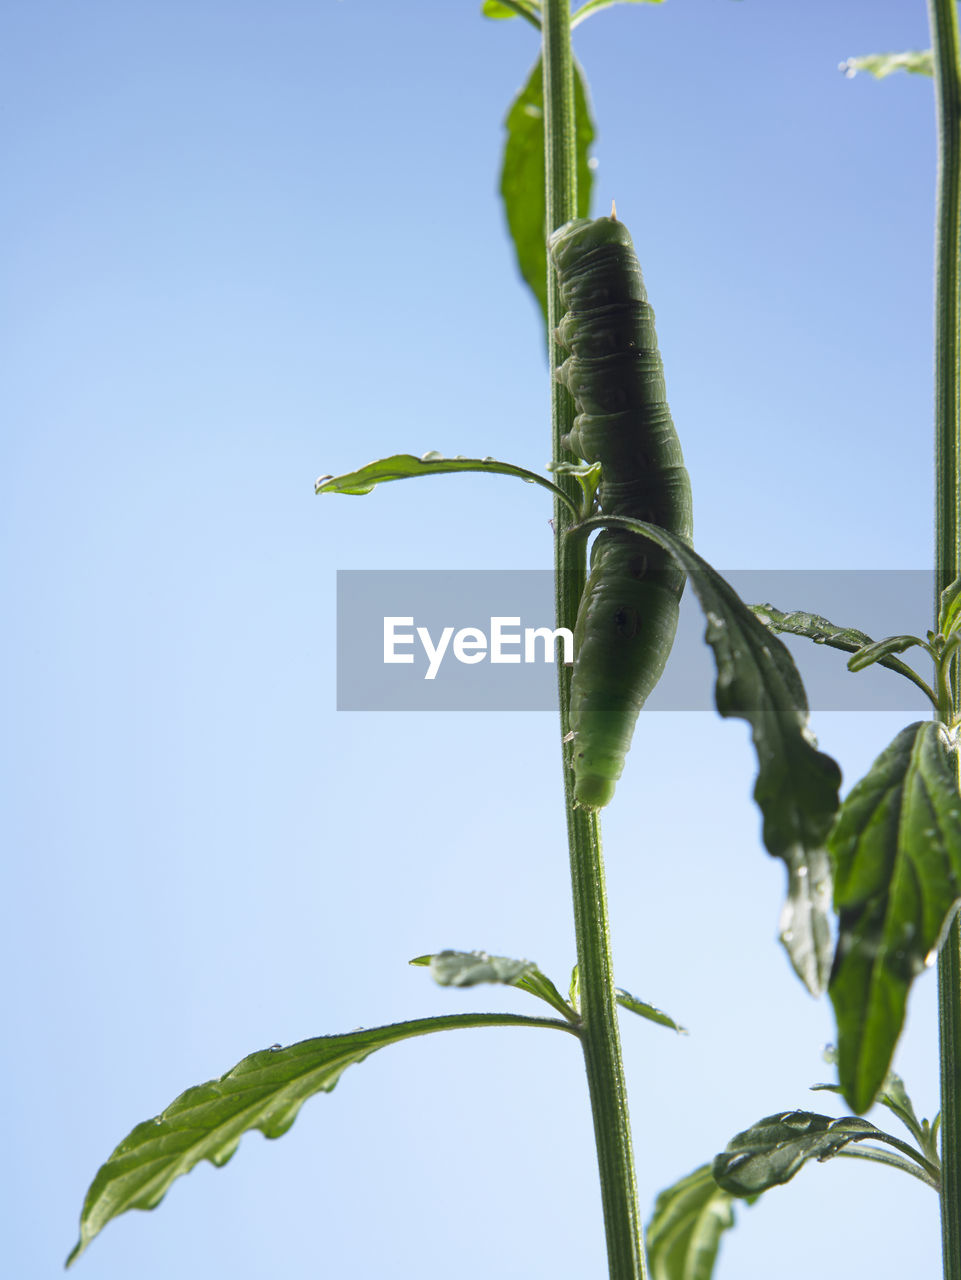 growth, plant, nature, sky, leaf, plant part, clear sky, green color, low angle view, no people, beauty in nature, close-up, day, blue, plant stem, copy space, outdoors, focus on foreground, tranquility, freshness, sepal